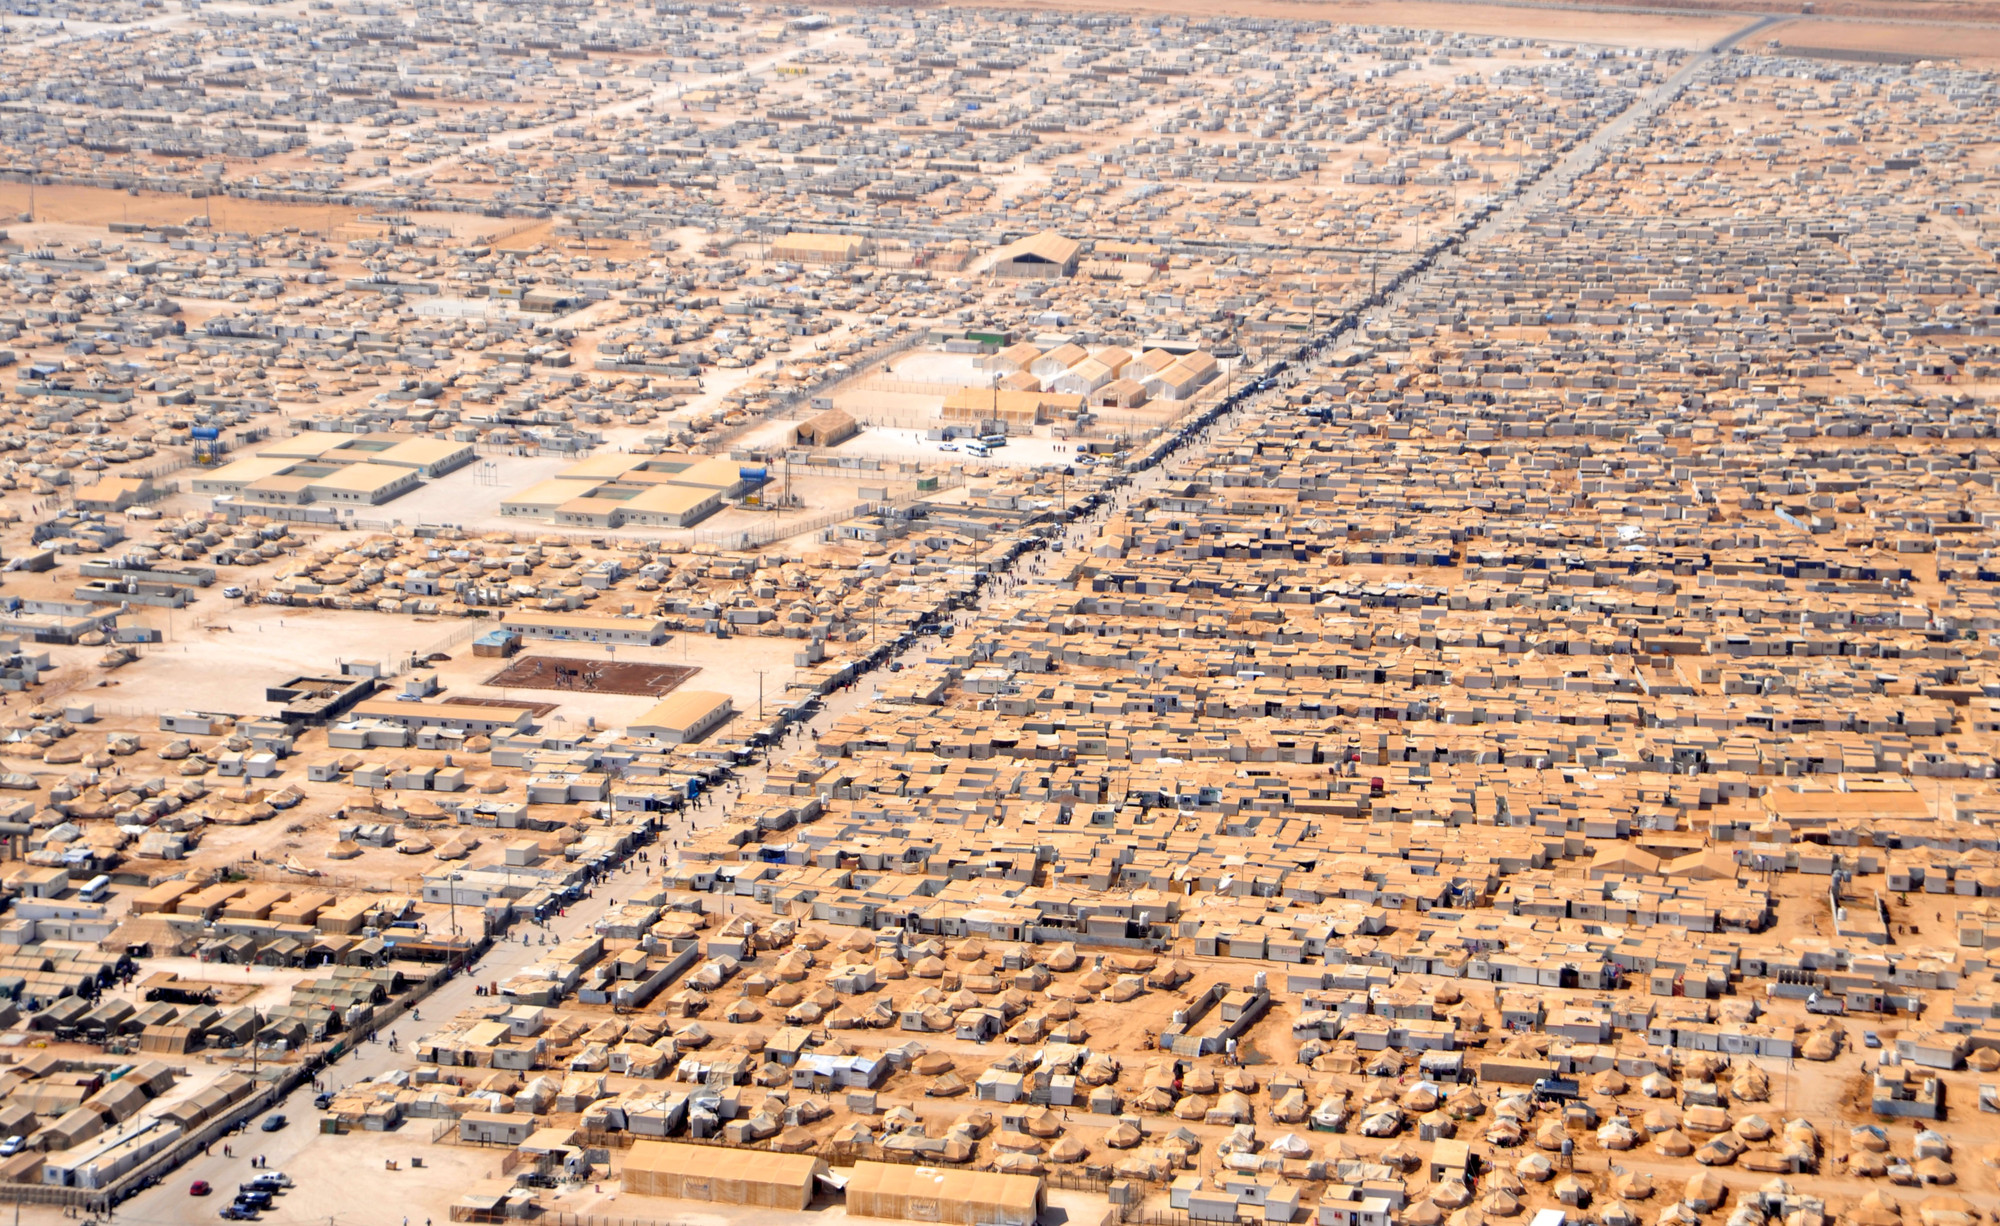 Syrian Refugee Camp Becoming Impromptu City, Aerial View of Zaatari Refugee Camp. Image Courtesy of Wikimedia